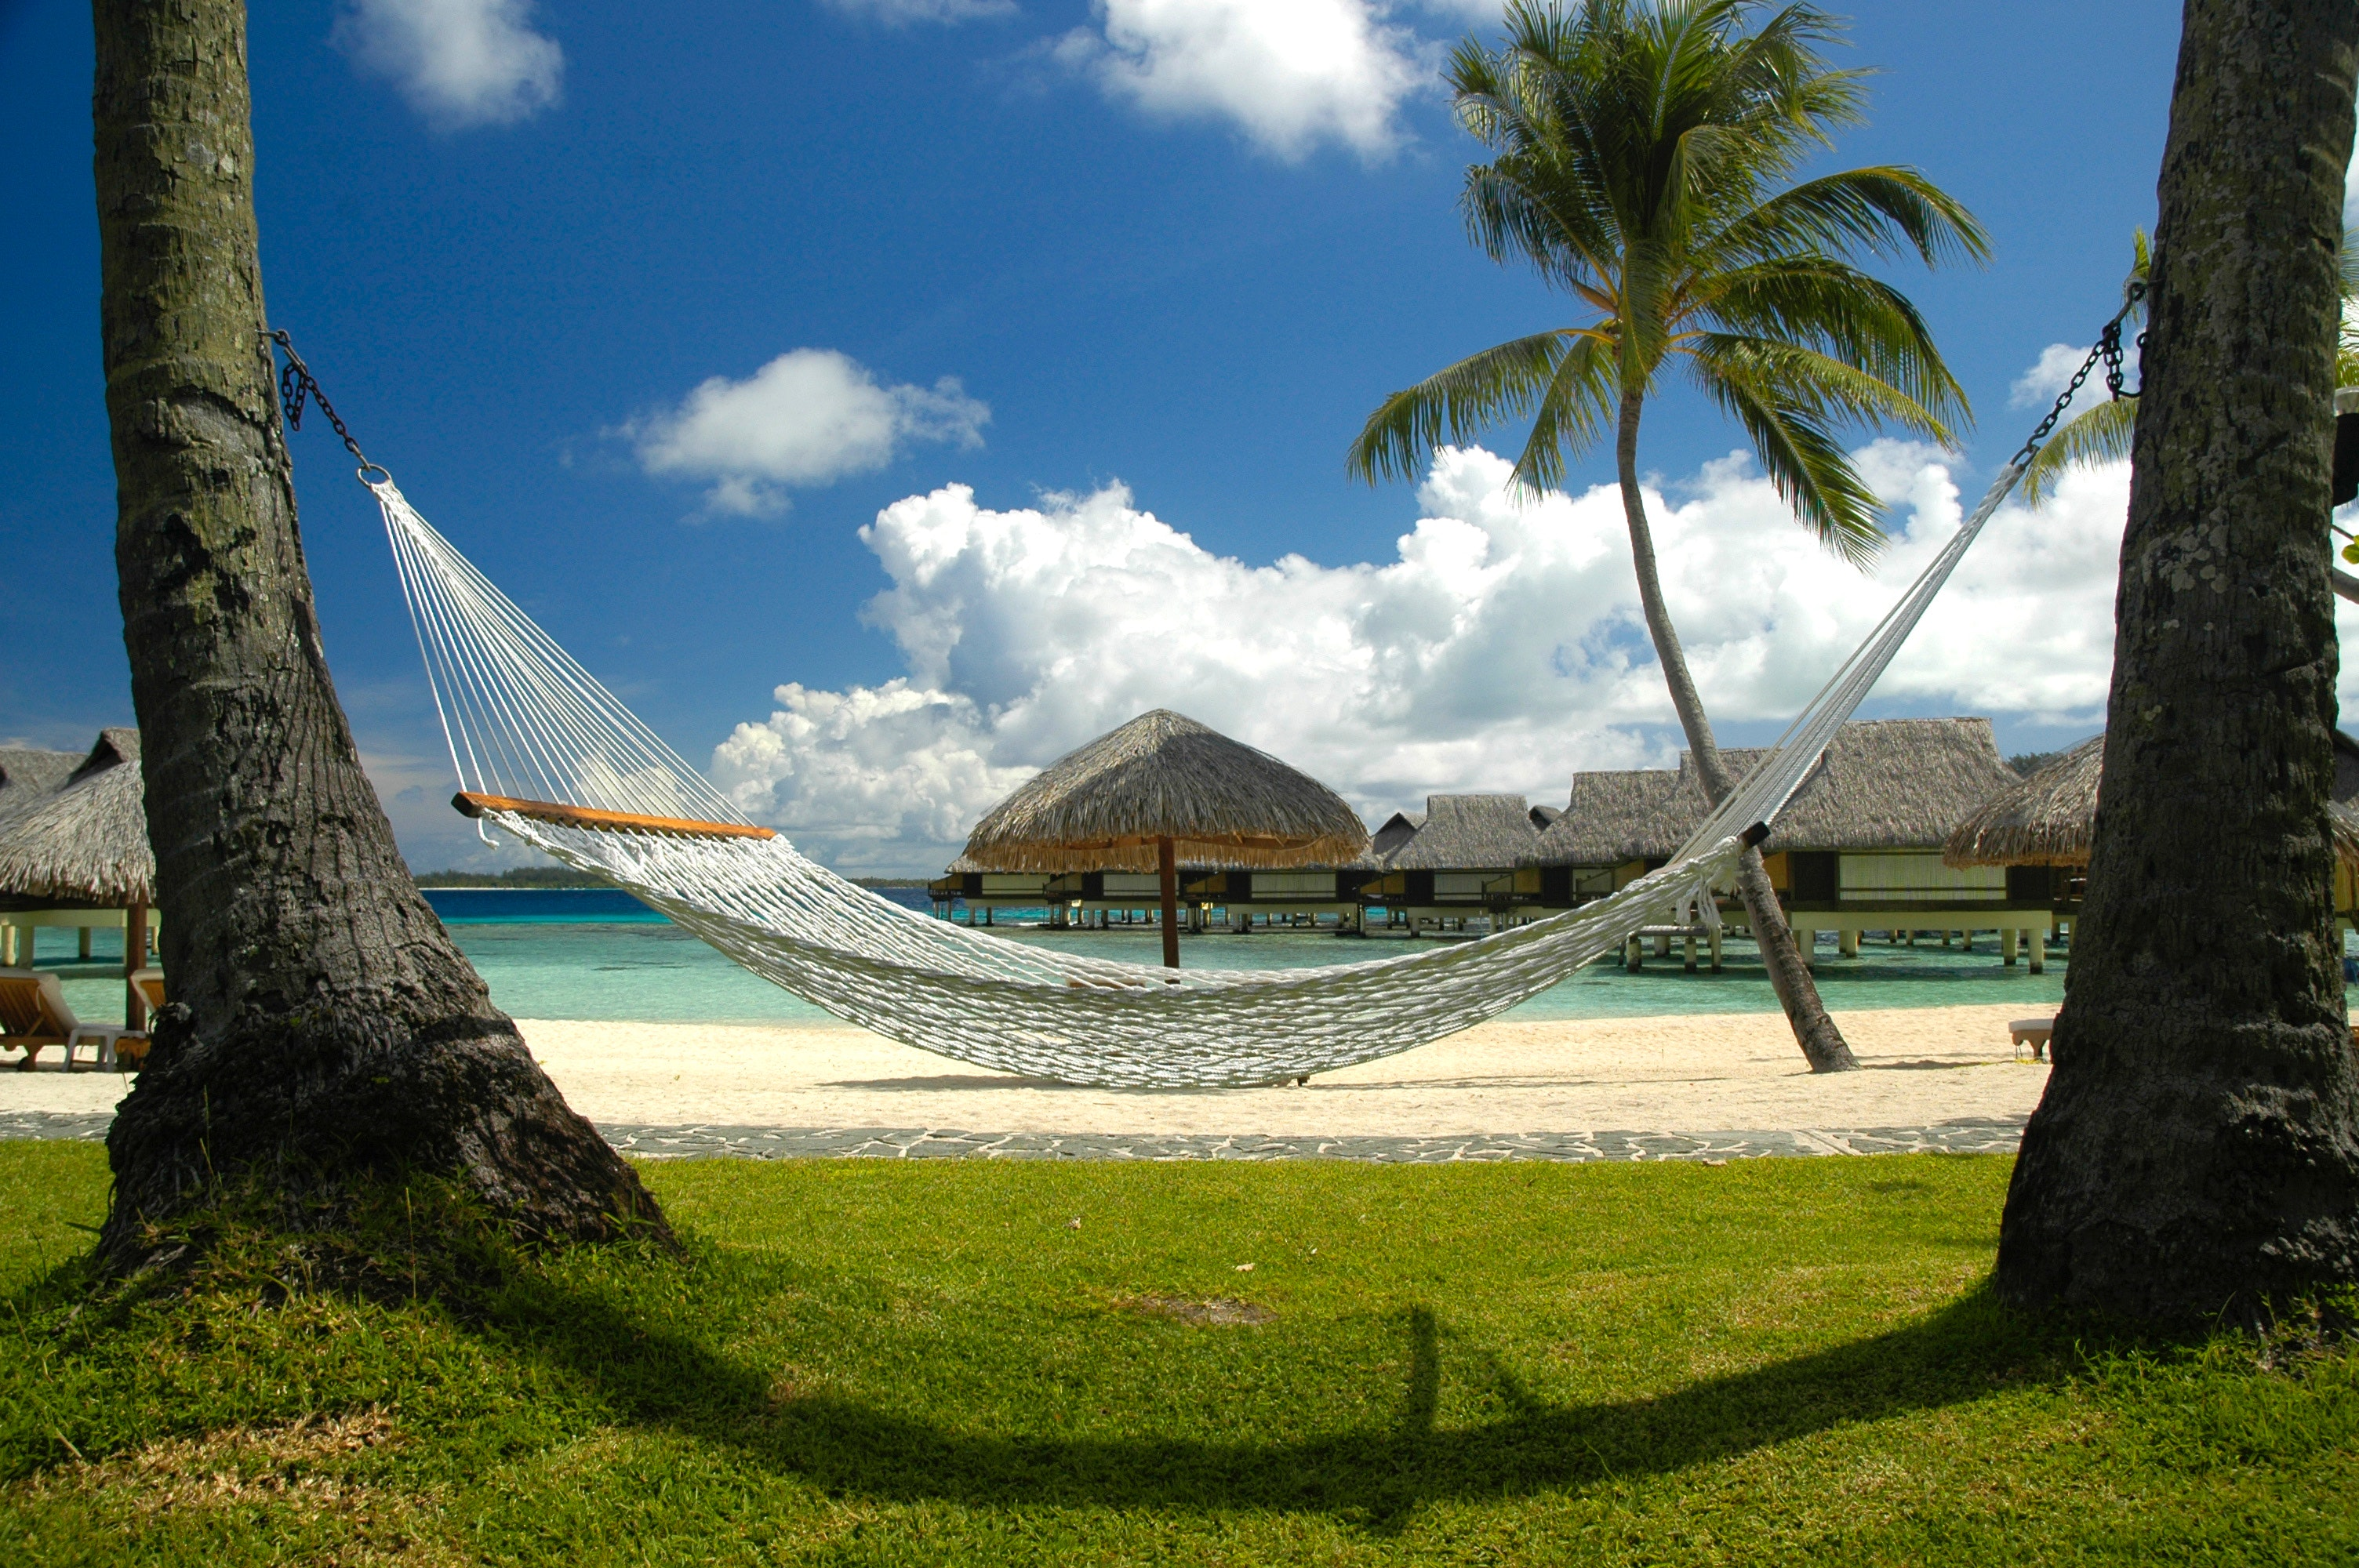 White Hammock on the Beach, Beach, Bungalows, Clouds, Hammock, HQ Photo